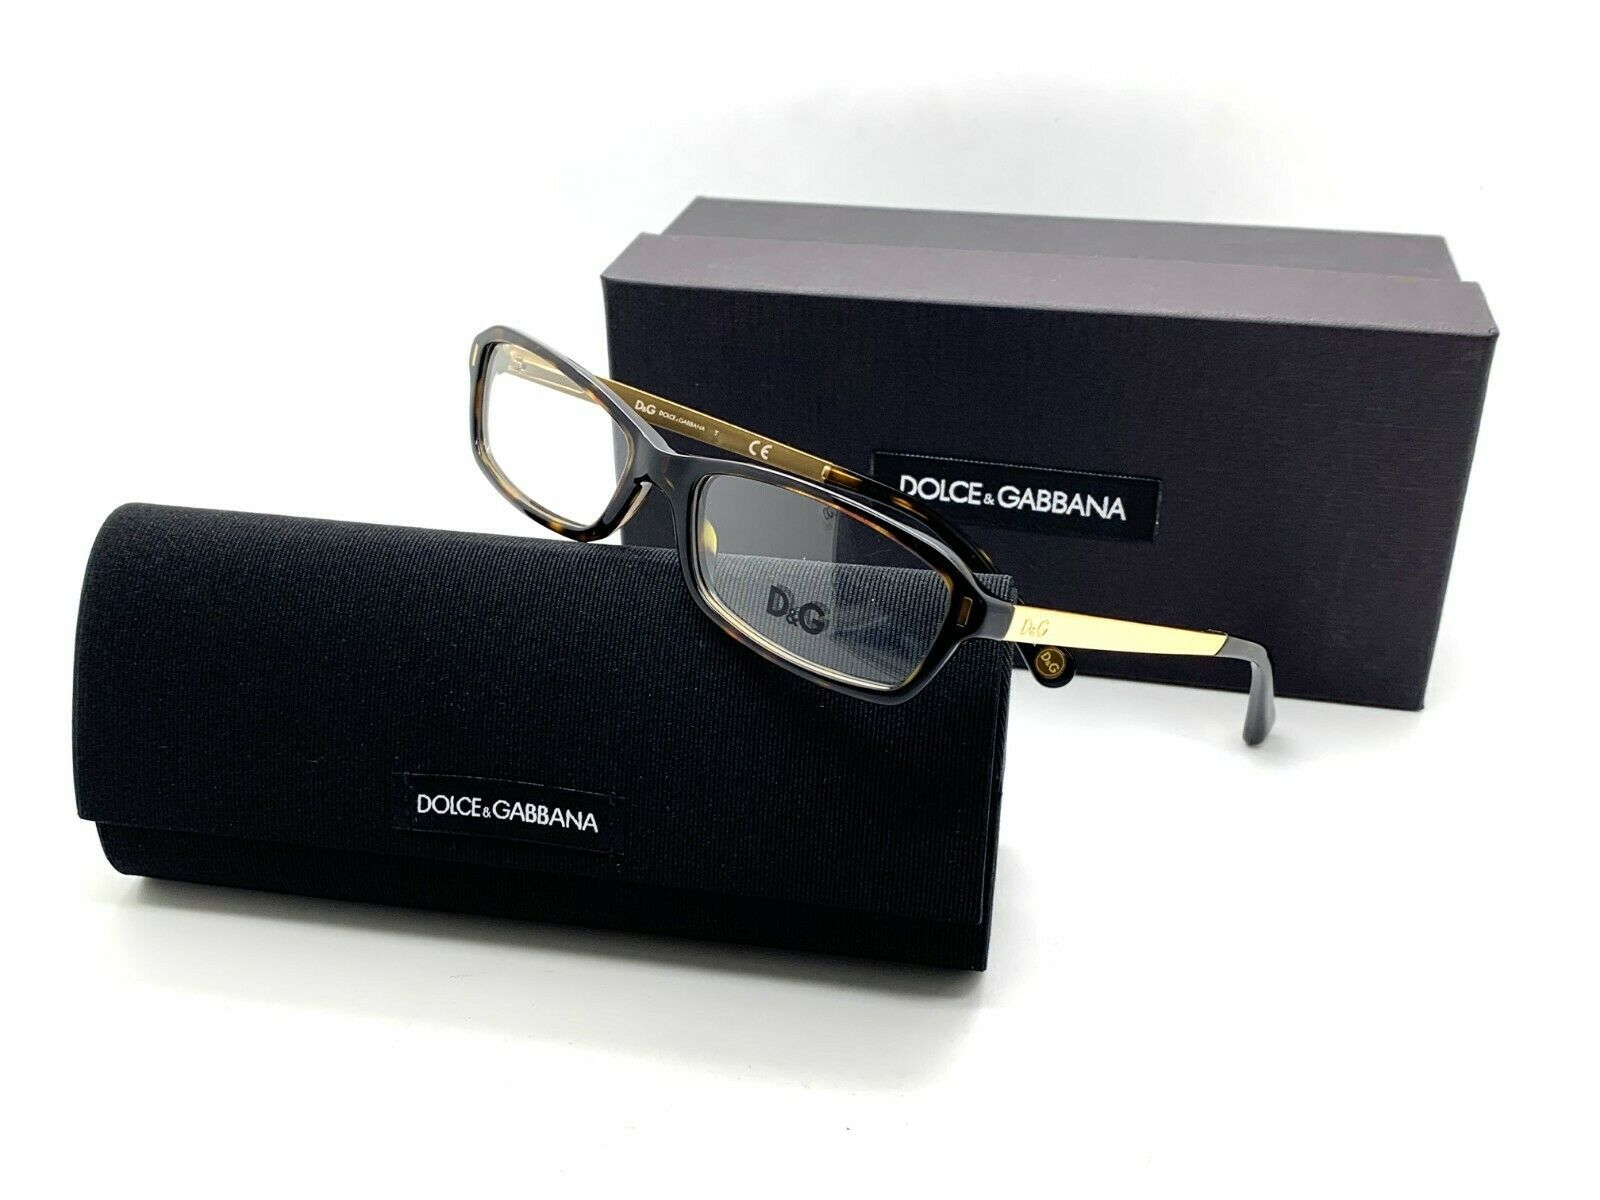 7589fdae25fb New Authentic Dolce & Gabbana 1217 502 Havana/Gold 51mm Eyeglasses Frames  RX - $67.87